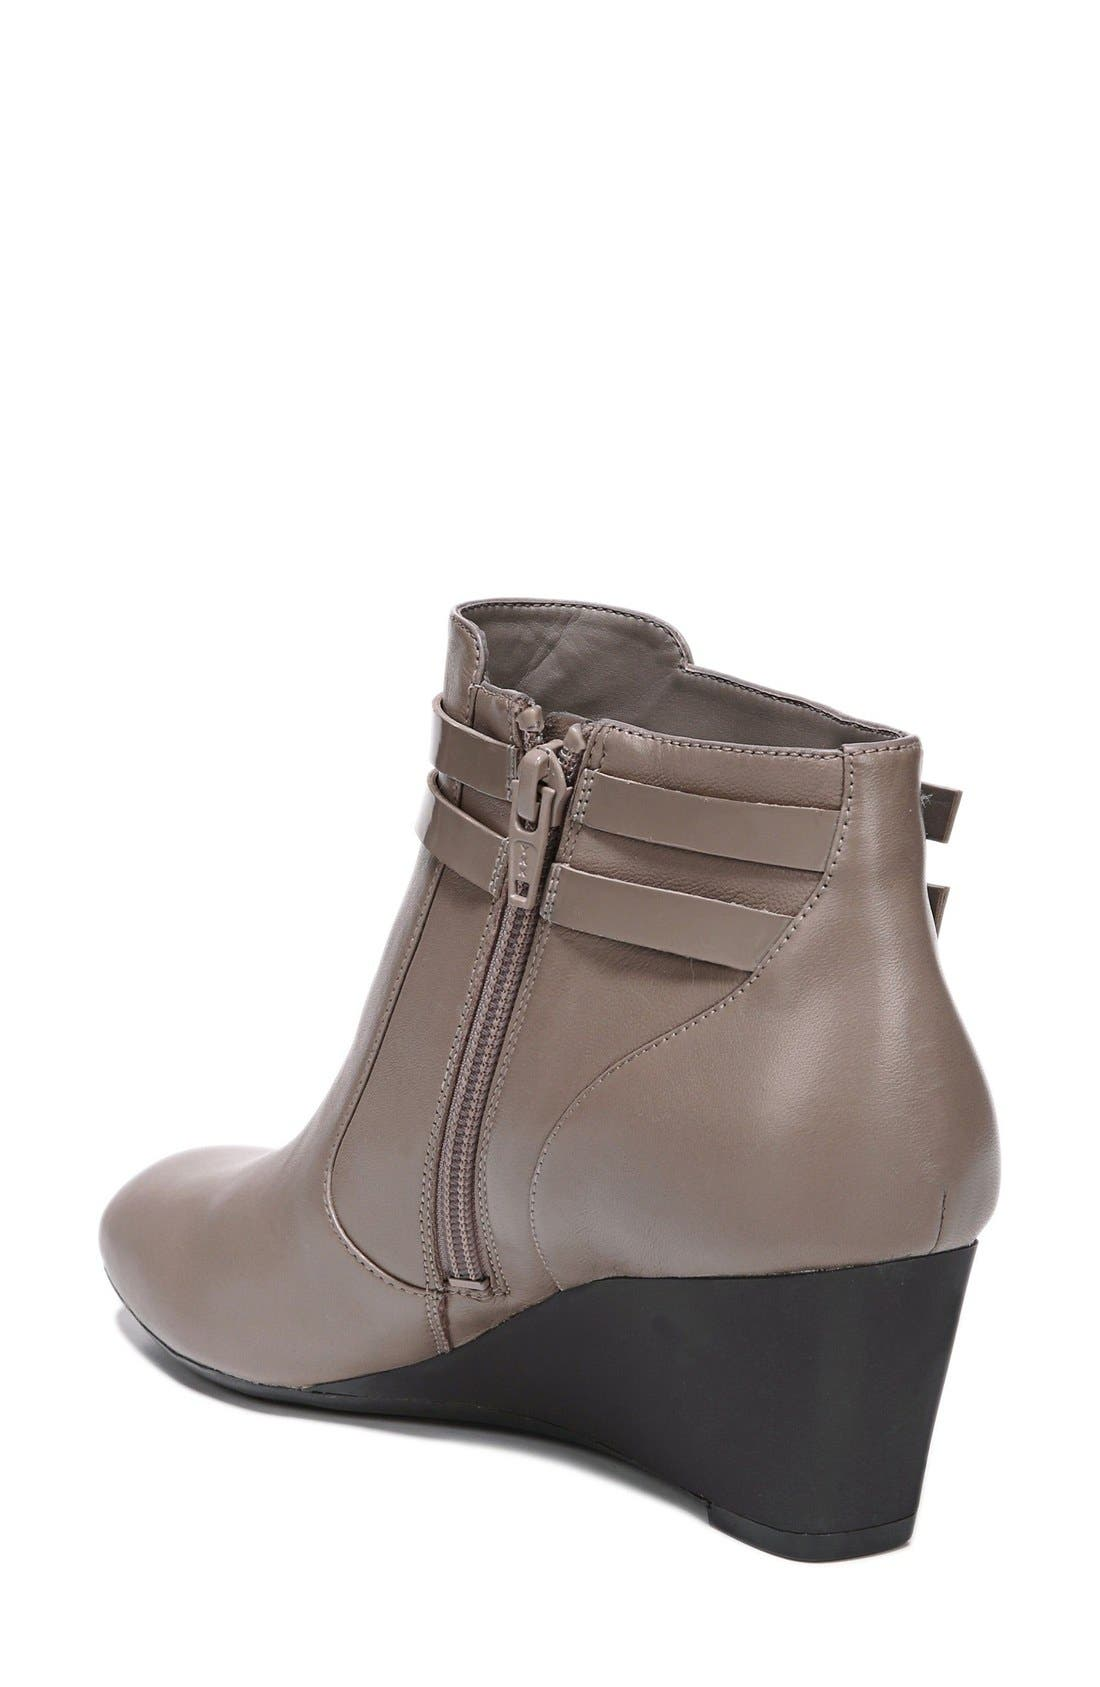 'Nikole' Wedge Bootie,                             Alternate thumbnail 2, color,                             Taupe Leather